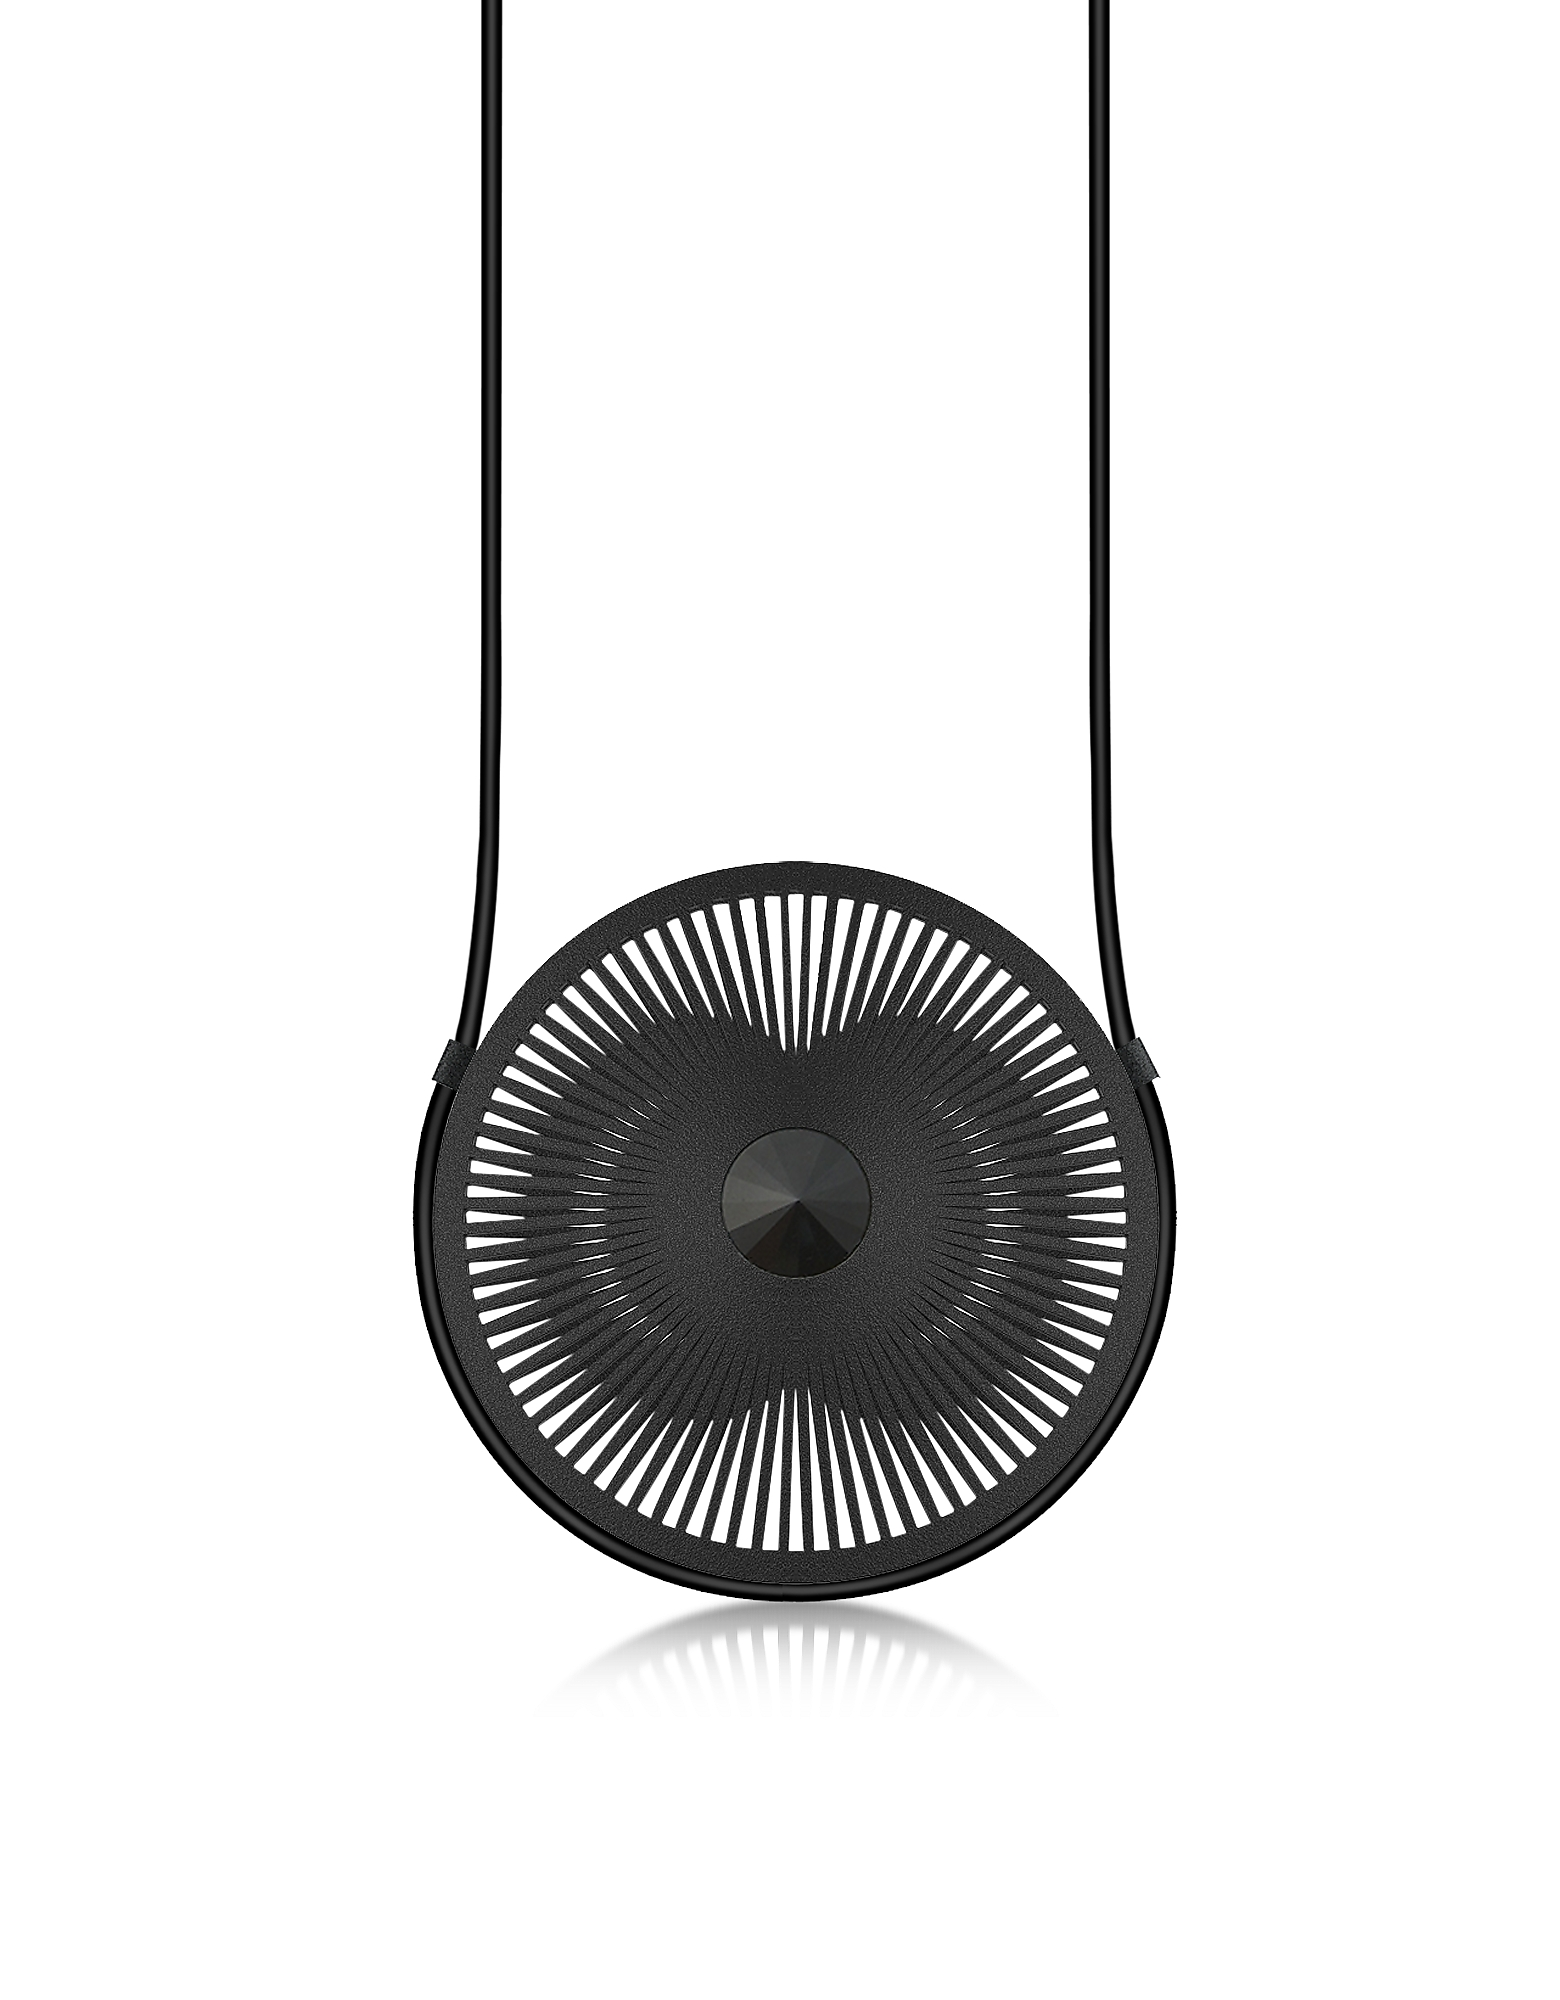 Image of Vojd Studios Designer Necklaces, Phase Black Statement Round Pendant